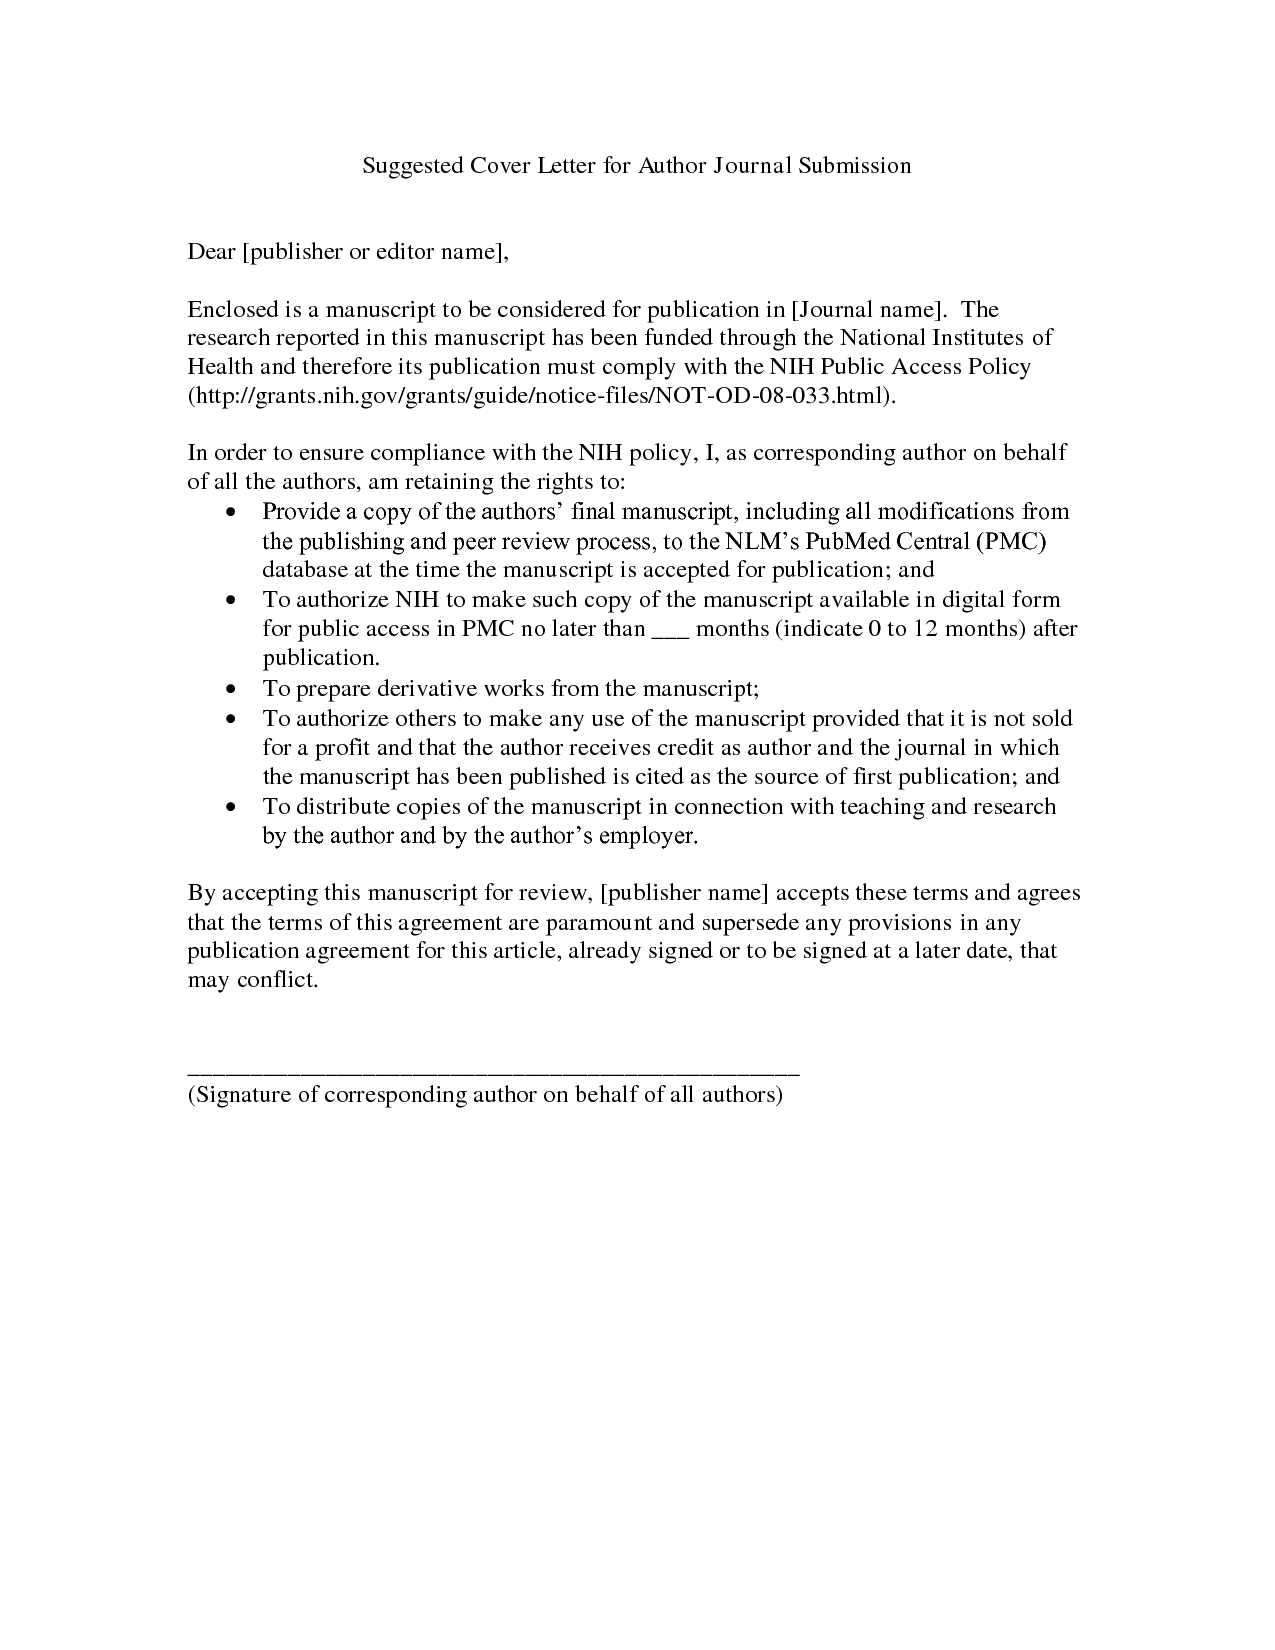 Personal Statement On Resume Manuscript Cover Letter Exle 28 Images 98 Cover Letter Manuscript .